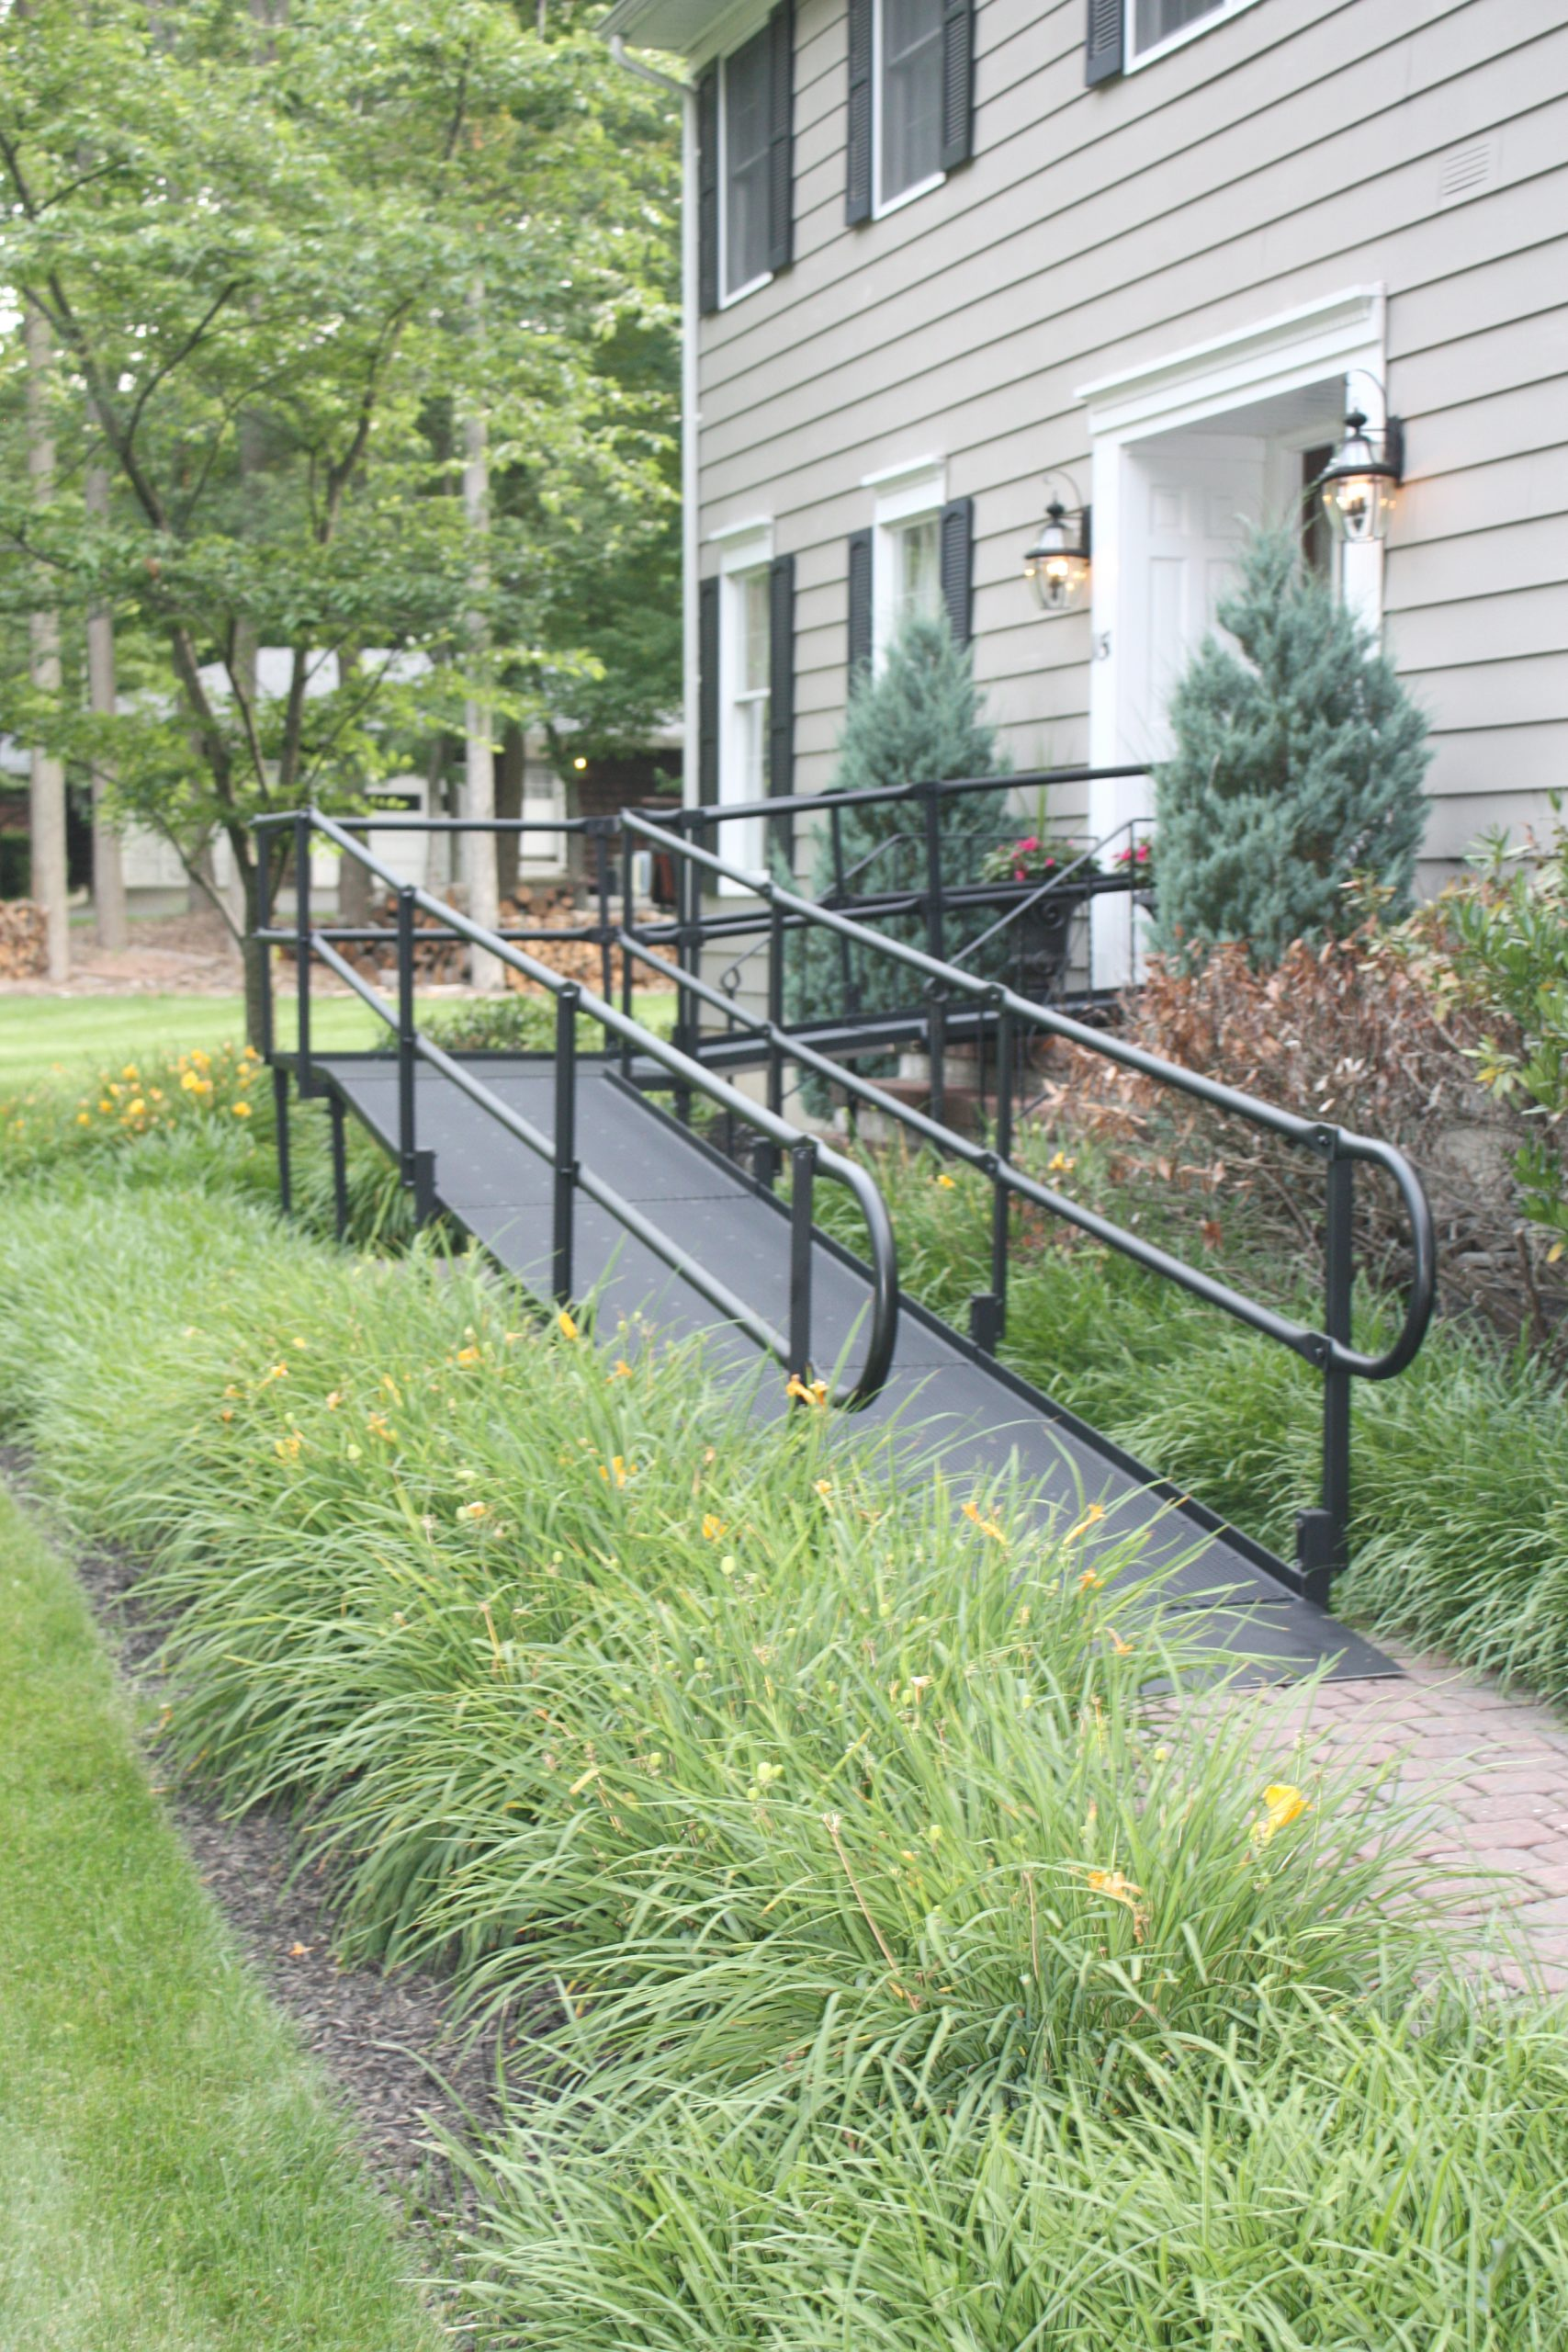 A black modular ramp in front of a building